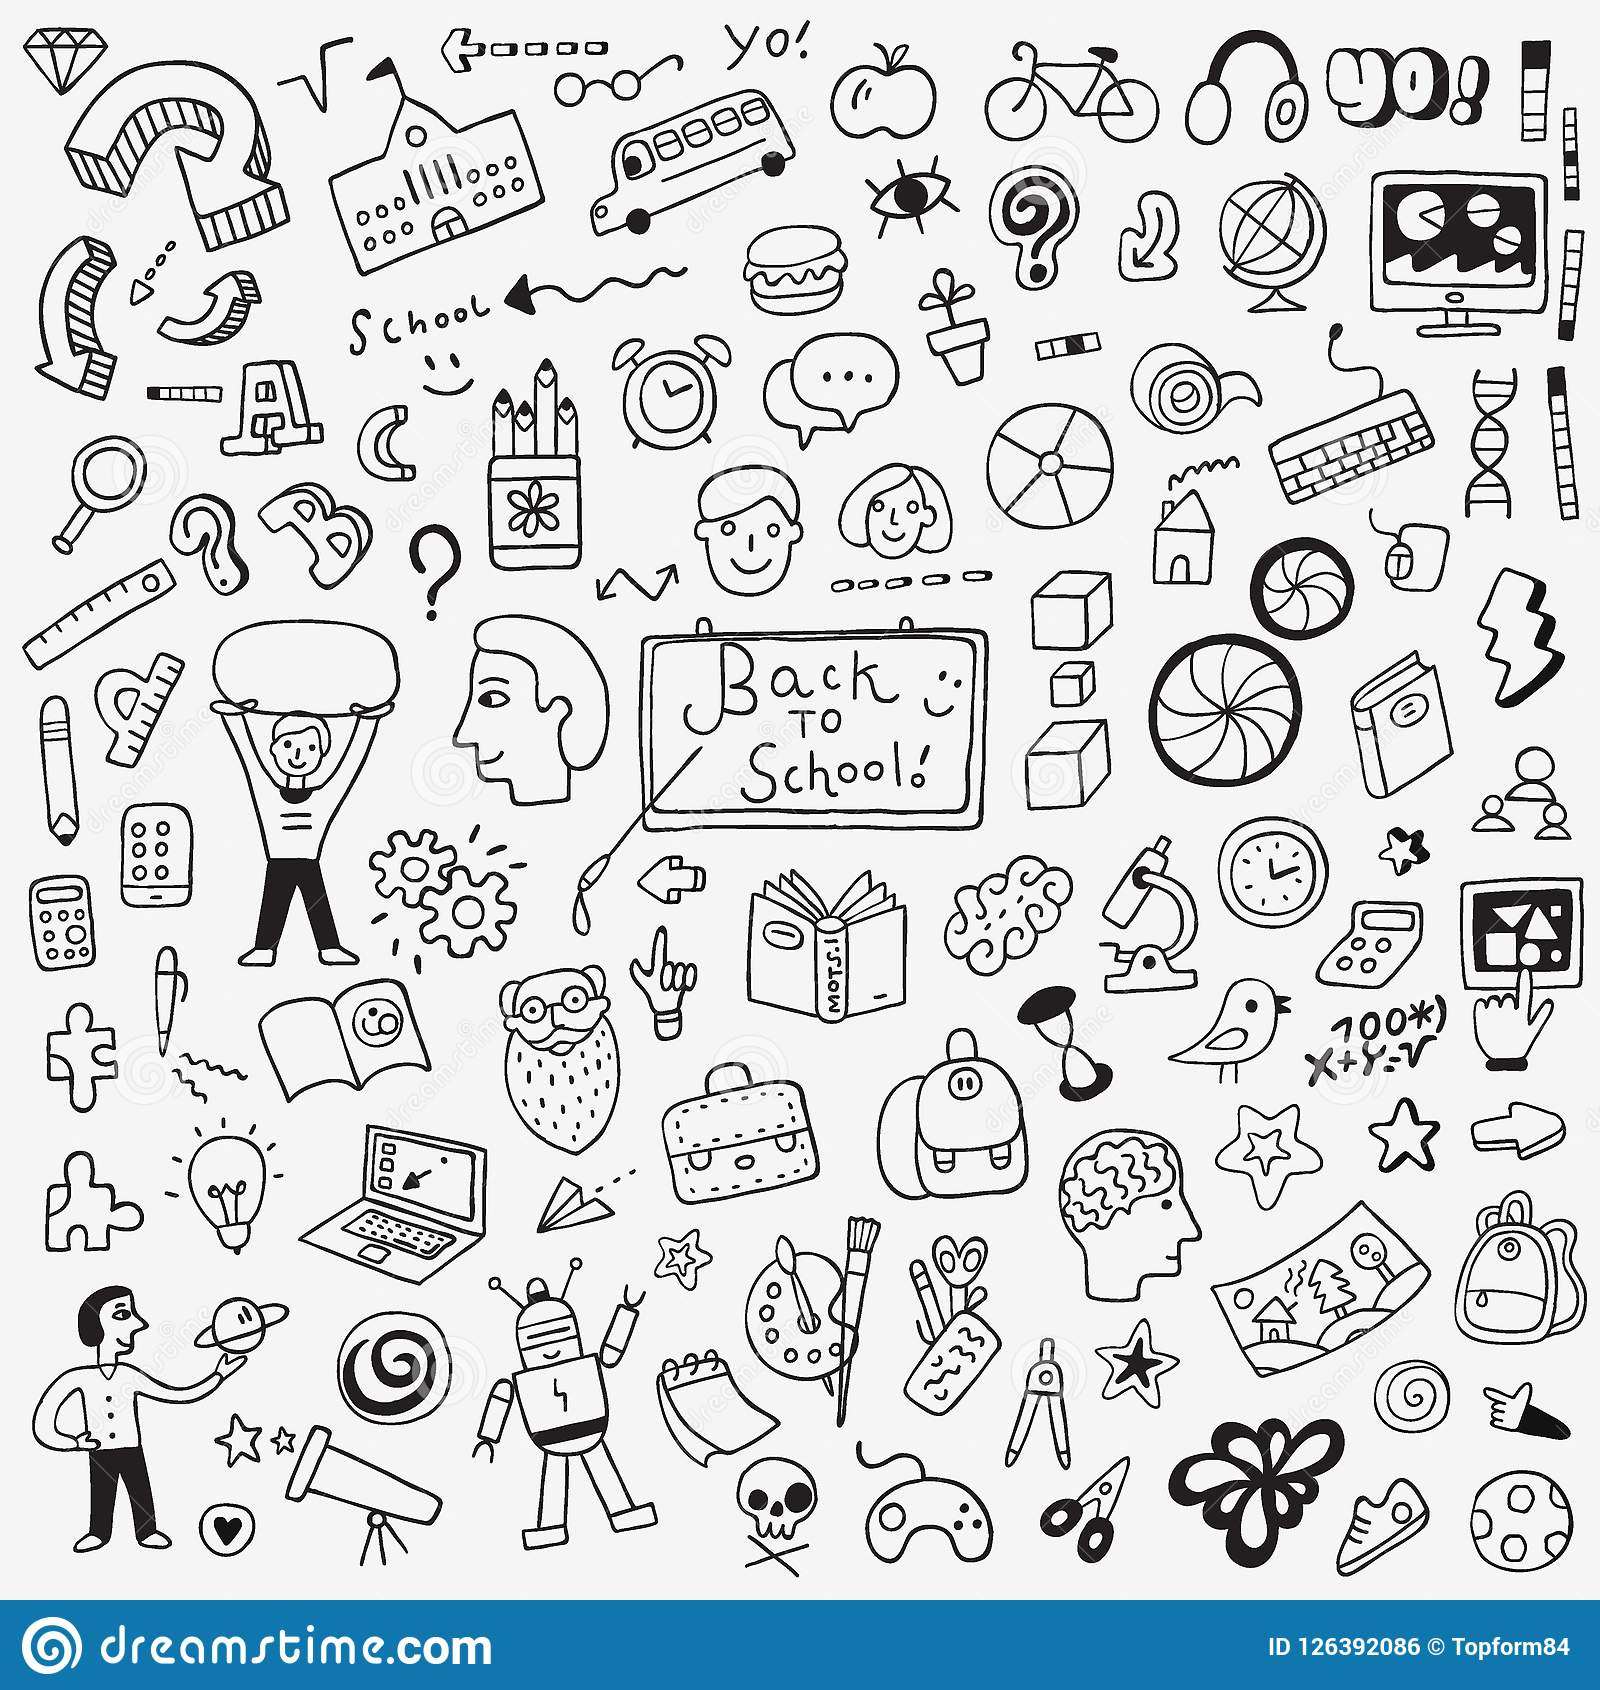 Education vector icons design elements